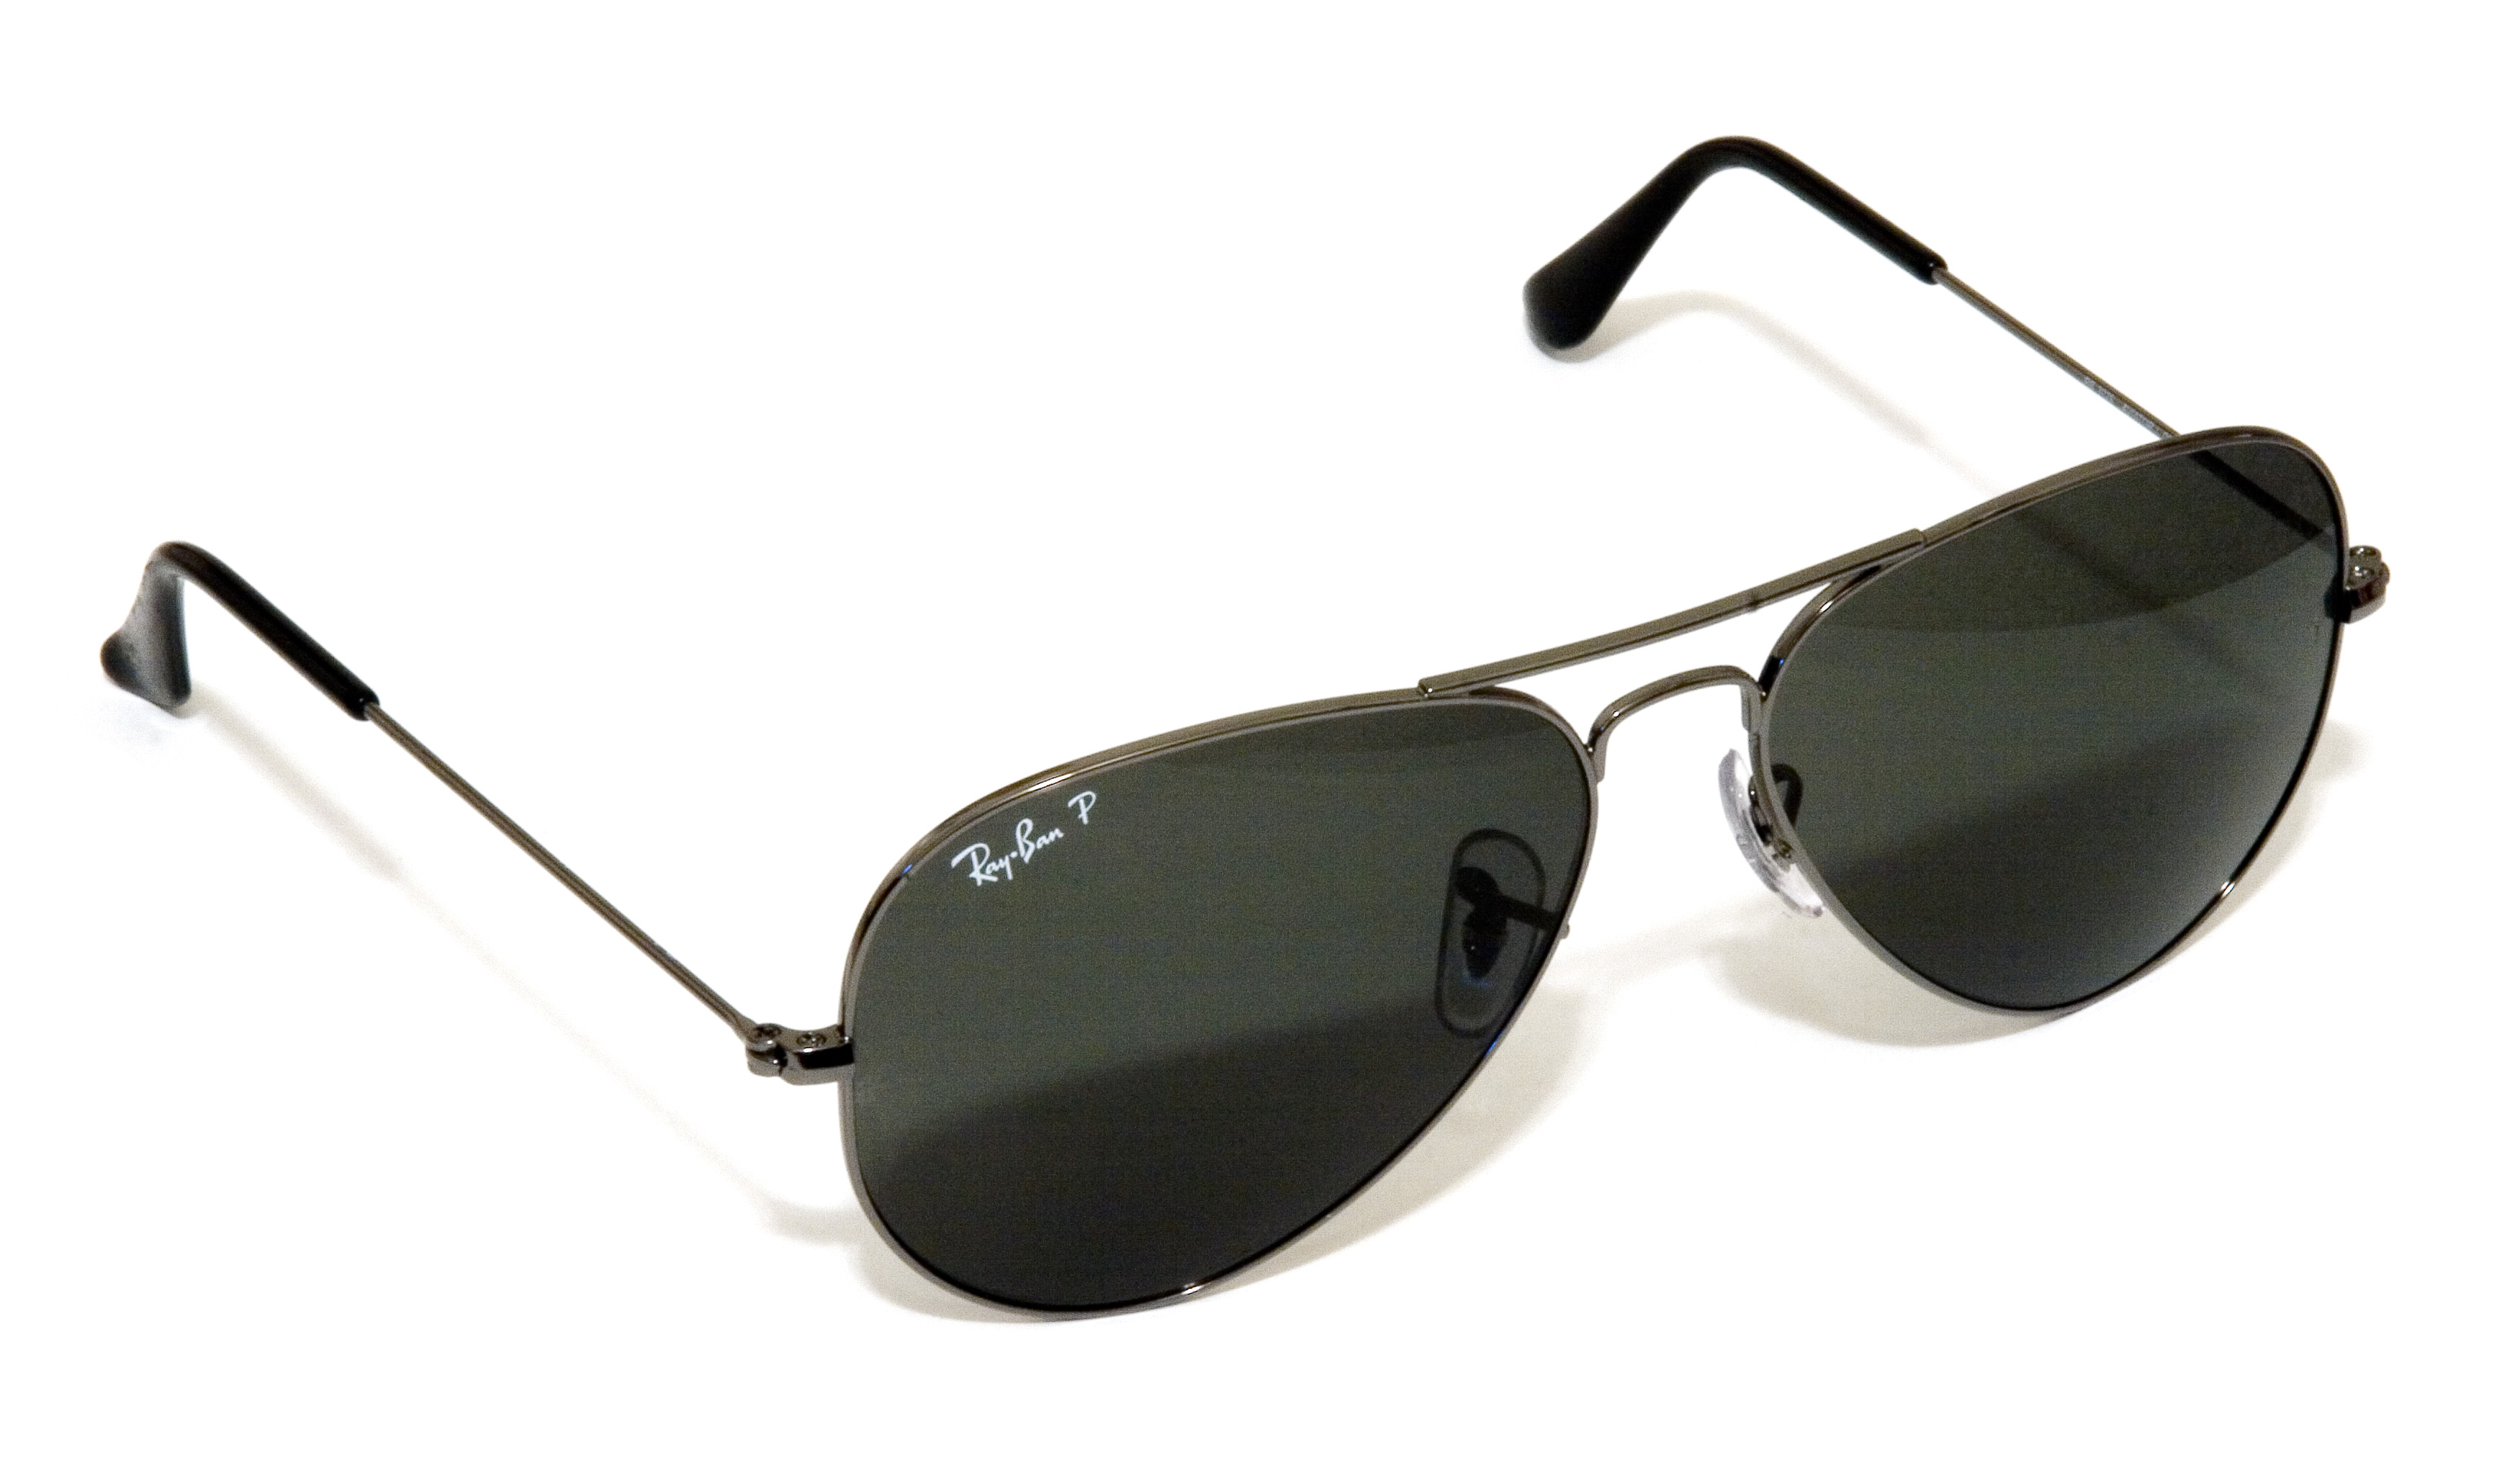 http://upload.wikimedia.org/wikipedia/commons/4/4b/RayBanAviator.jpg